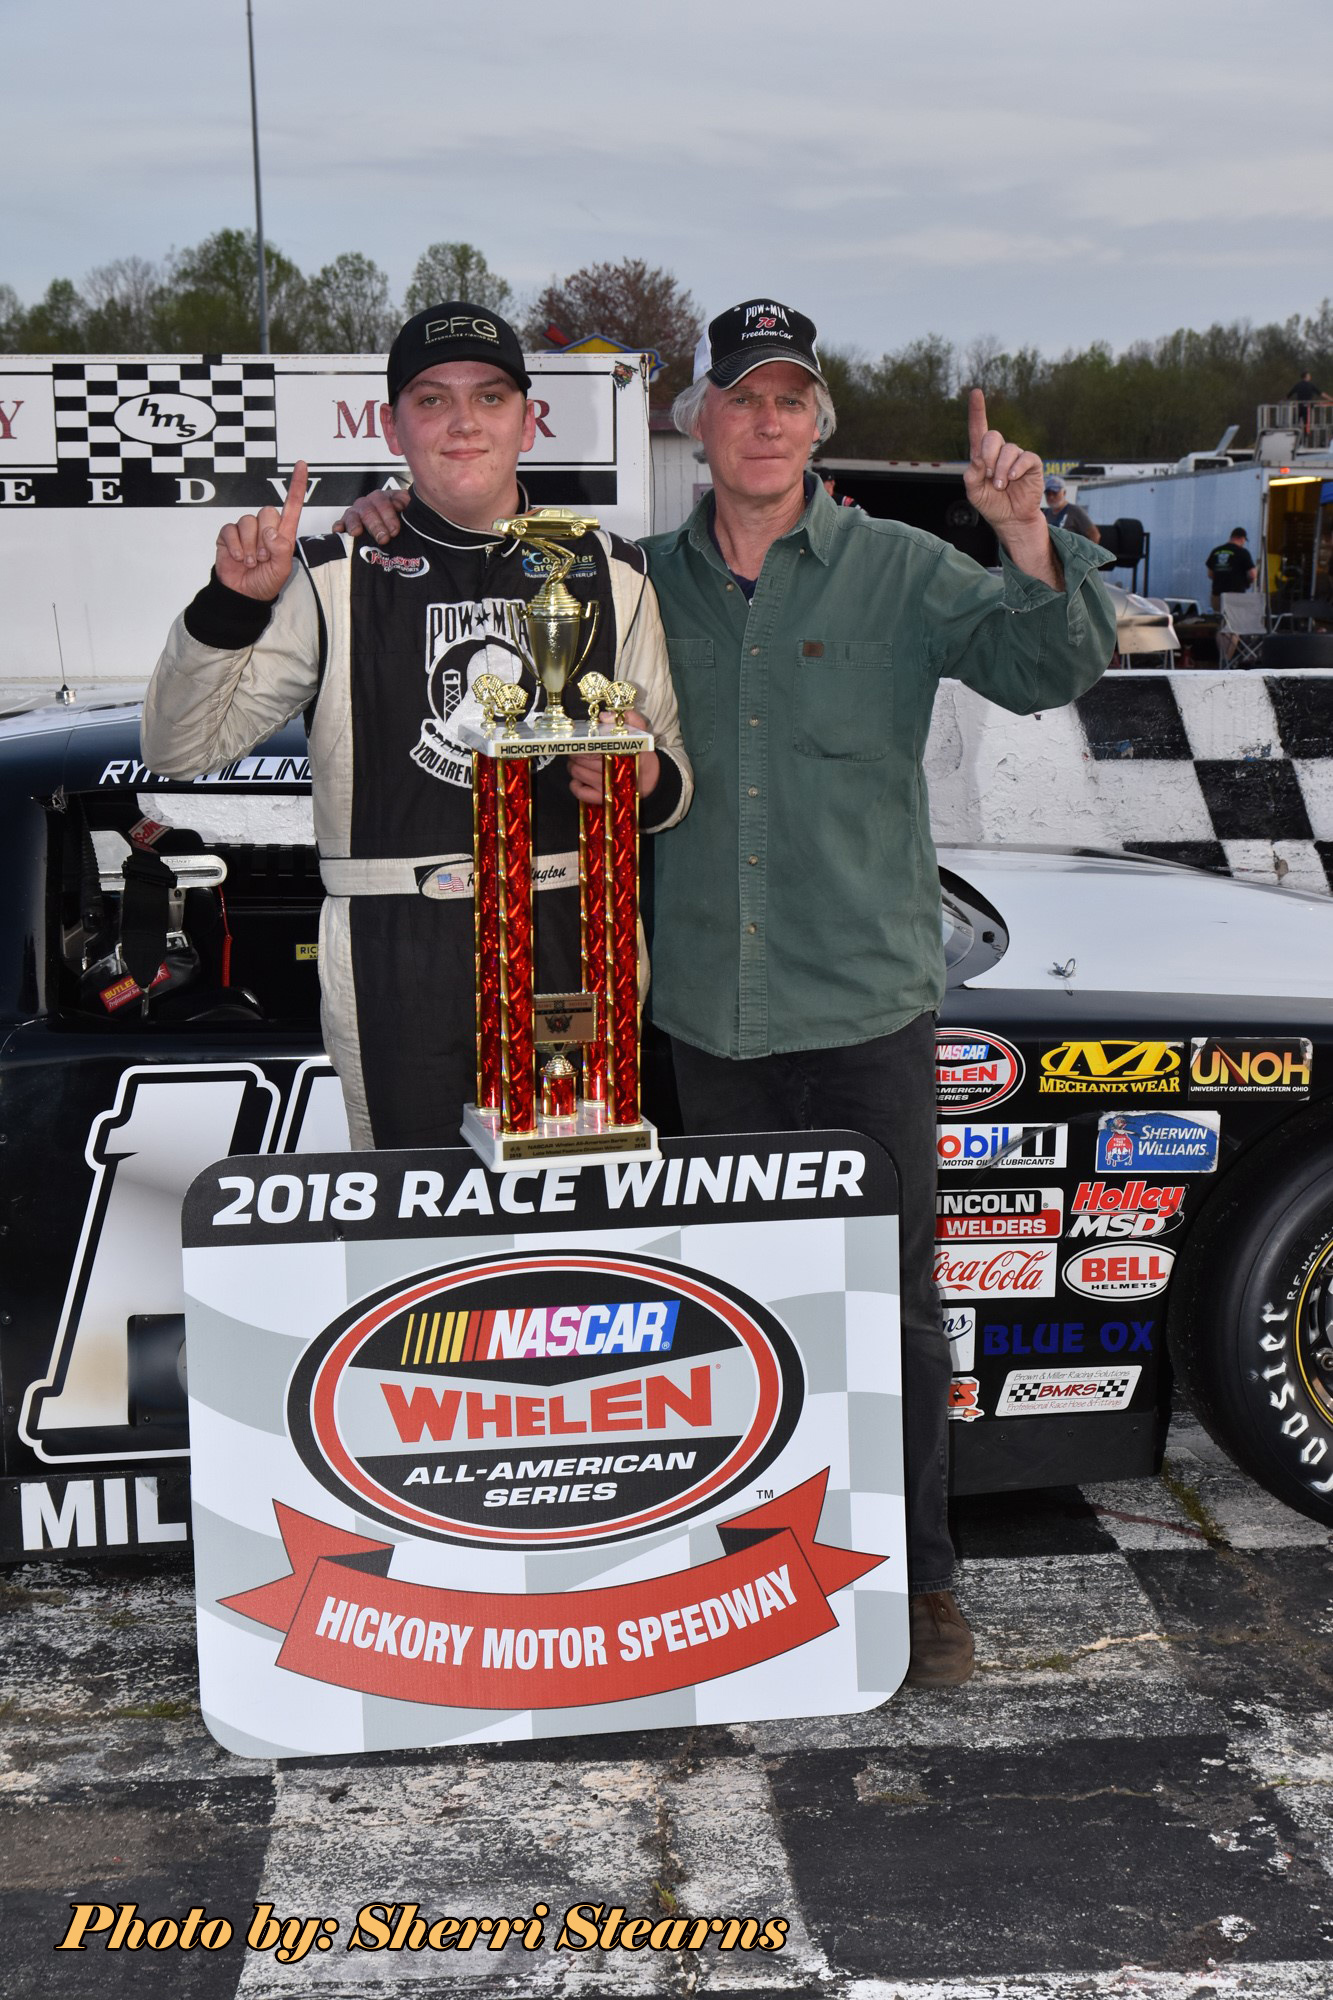 The thunder roared again in the Catawba Valley, not for rain but the engines fired at the Birthplace of the NASCAR Stars, Hickory Motor Speedway ...